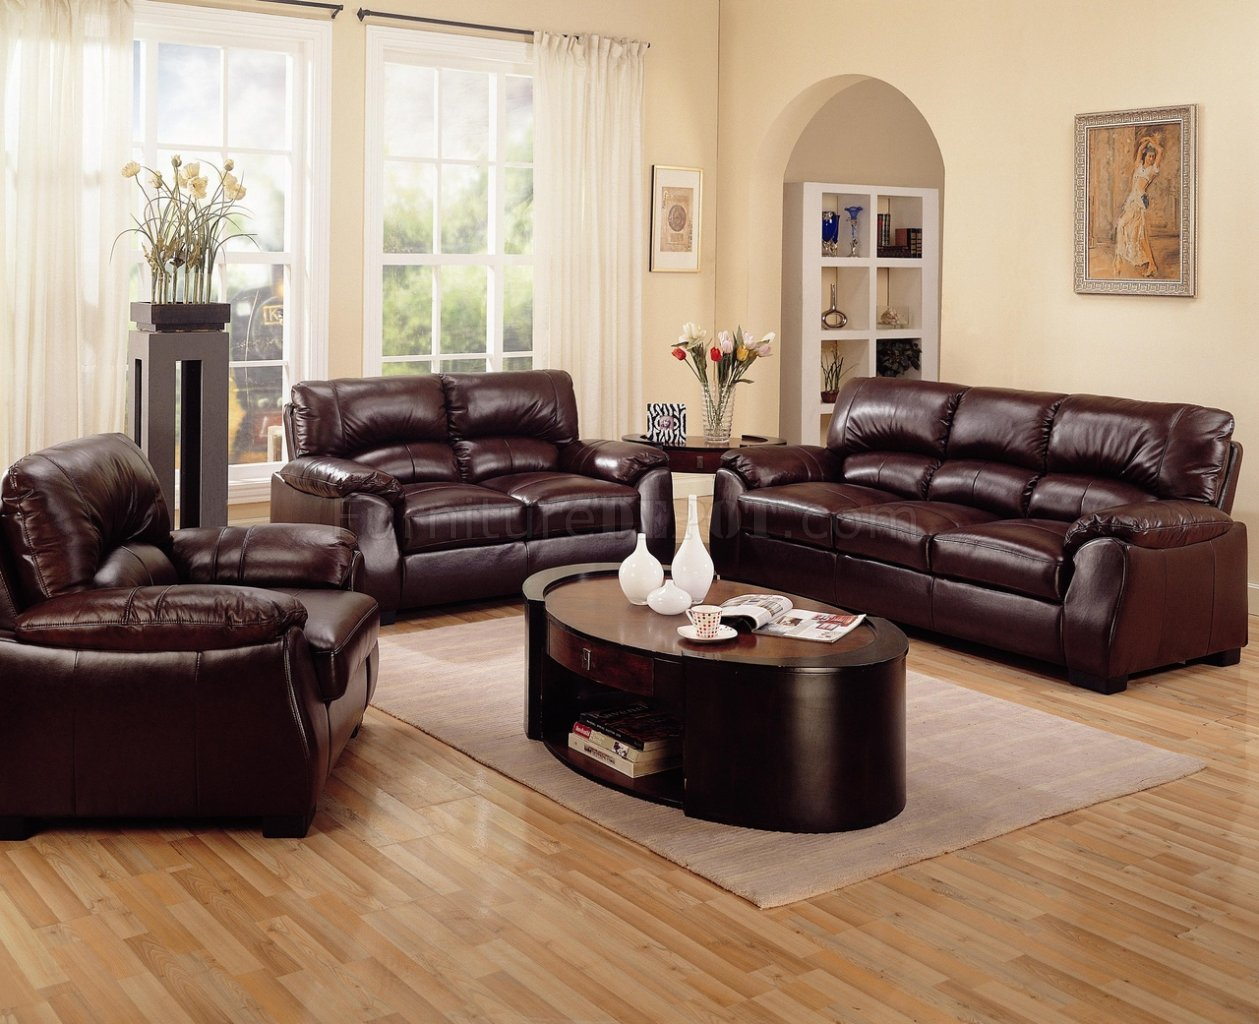 Cheap Furniture Sets Near Me